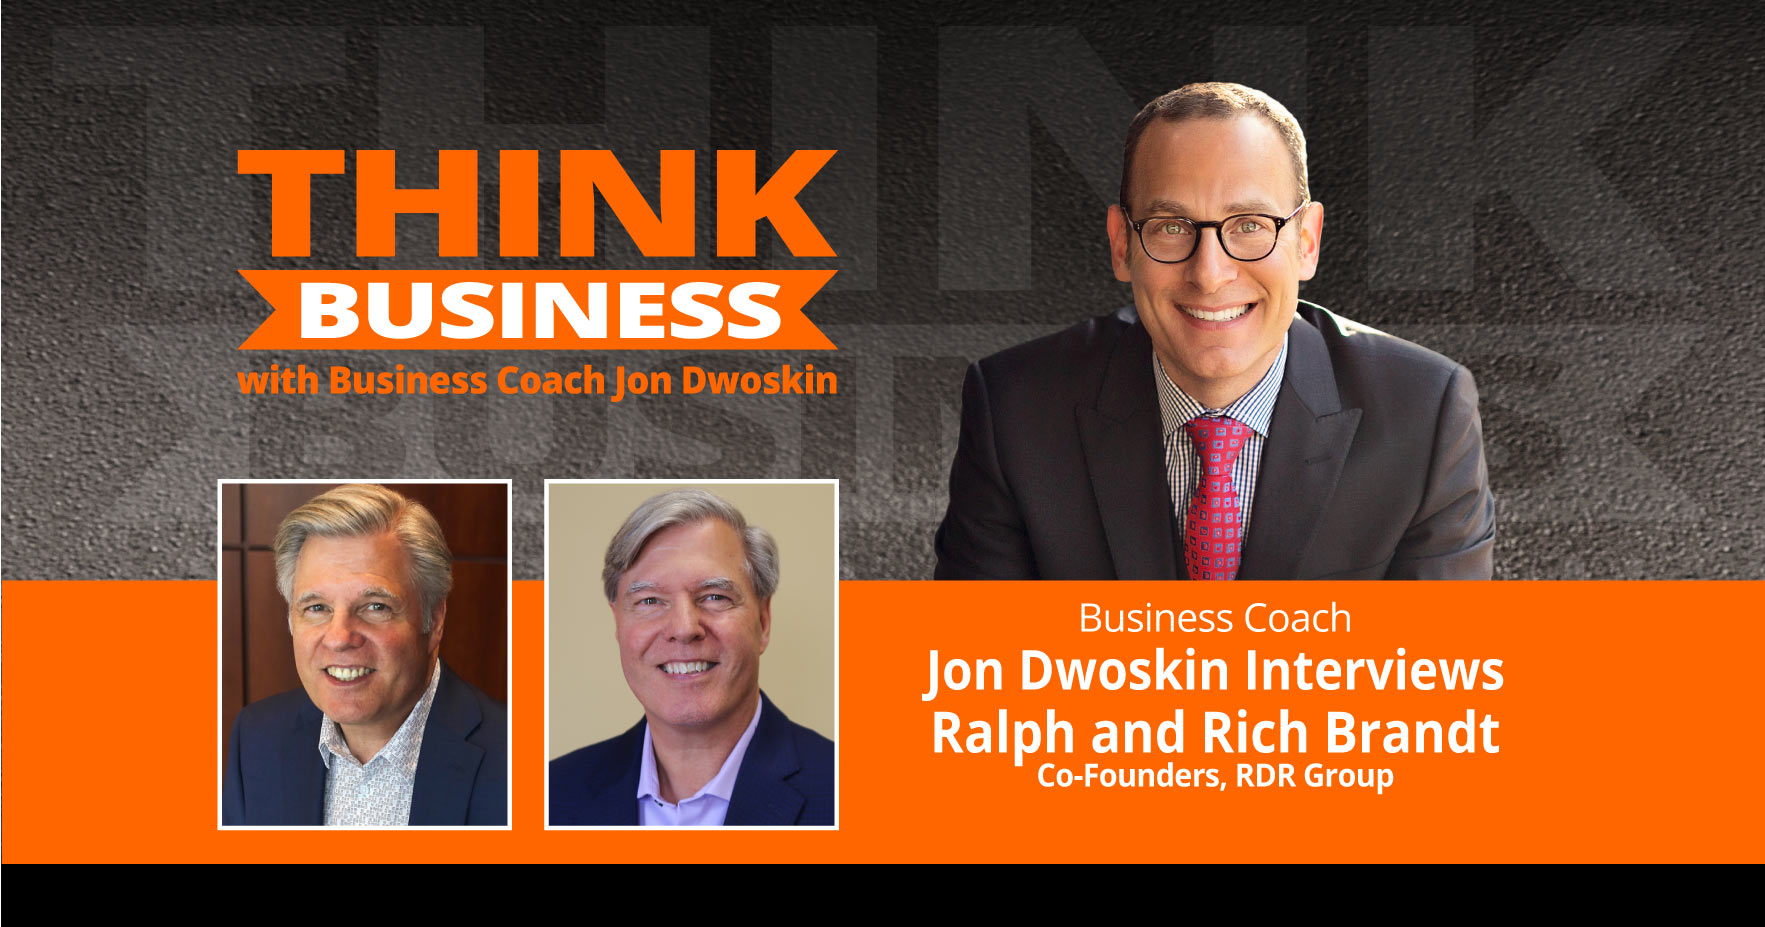 THINK Business Podcast: Jon Dwoskin Talks with Ralph and Rich Brandt